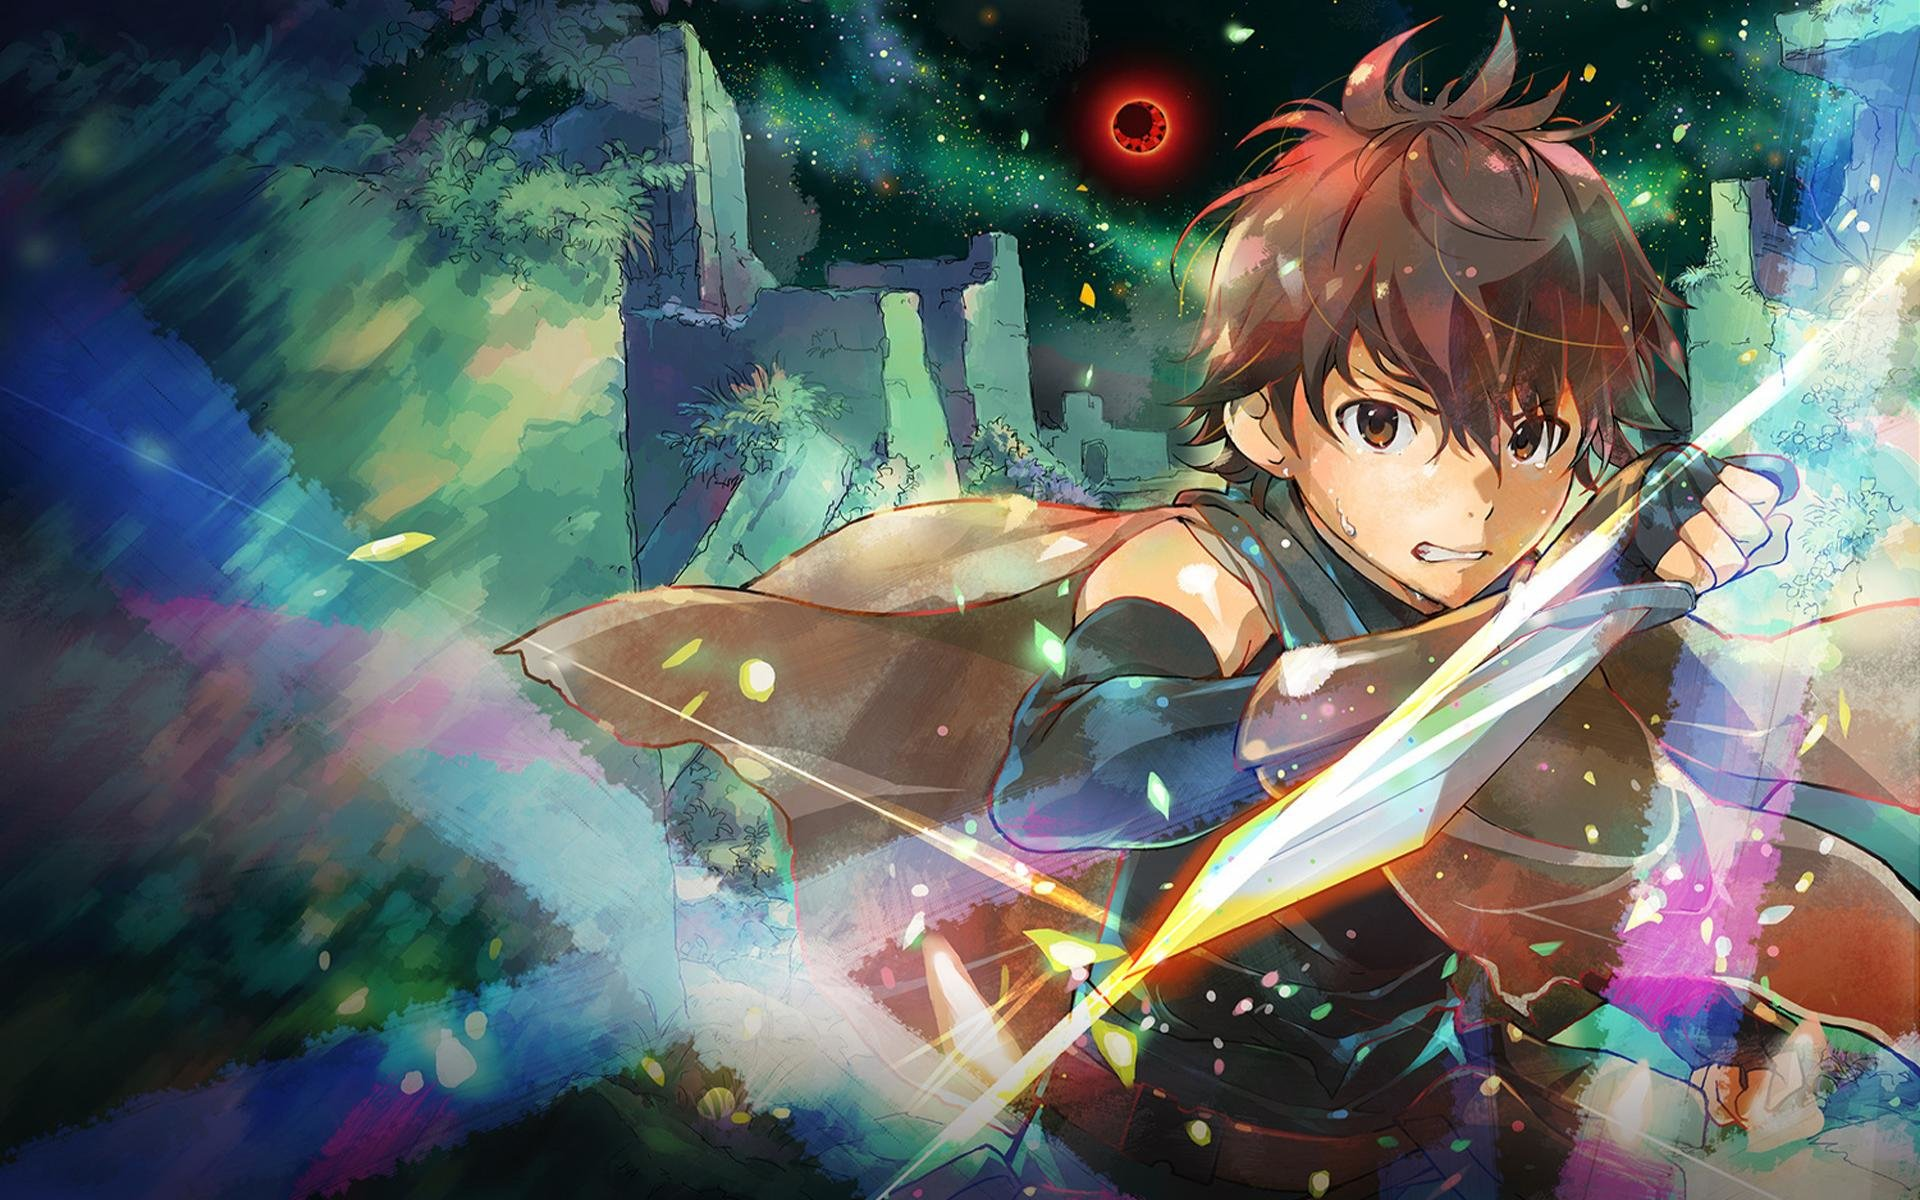 Download hd 1920x1200 Grimgar Of Fantasy And Ash computer background ID:39927 for free